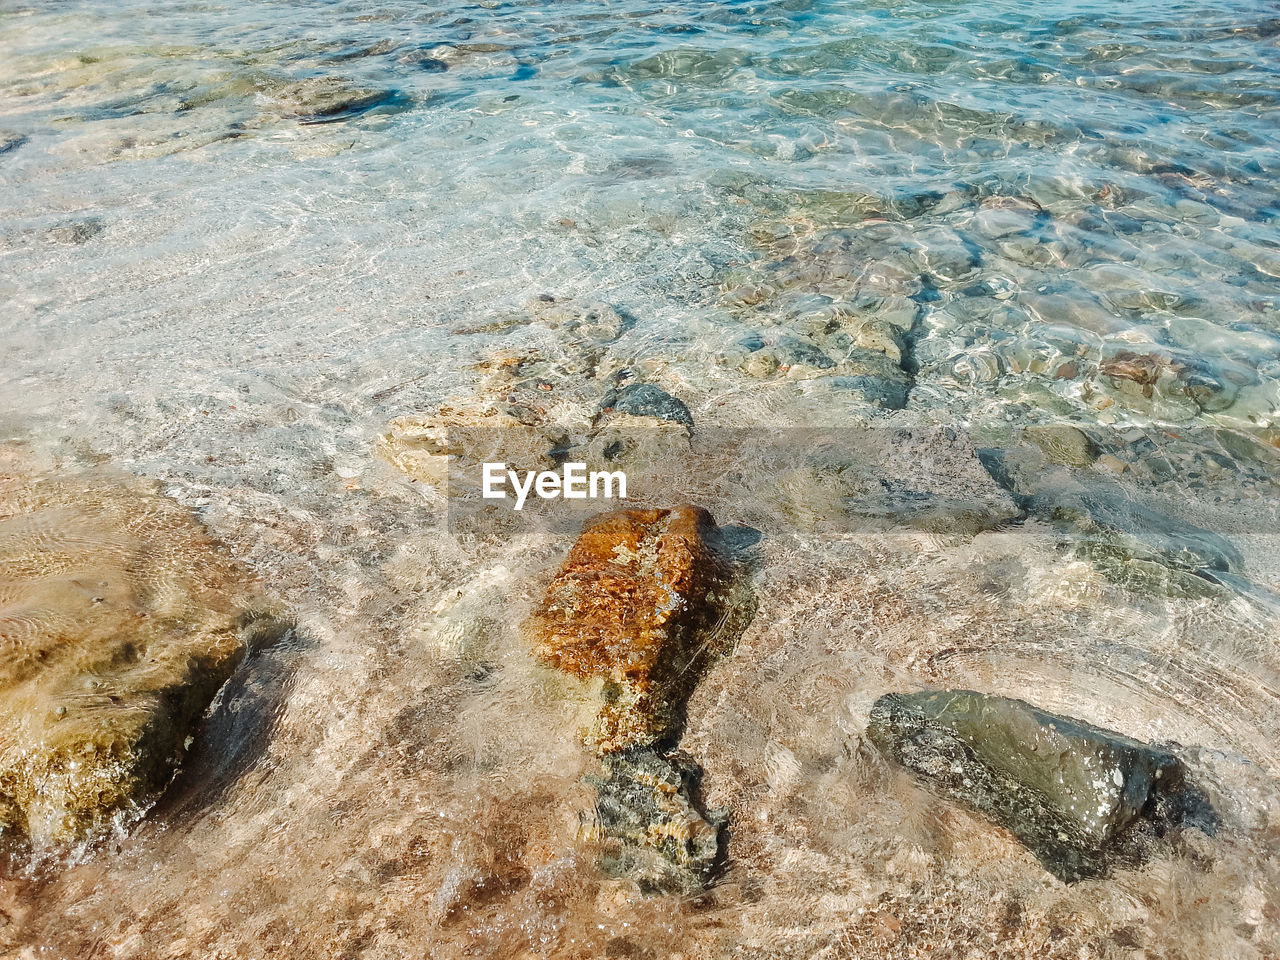 water, sea, nature, high angle view, land, beach, no people, day, beauty in nature, rock, outdoors, rock - object, solid, tranquility, sand, animal, motion, animal wildlife, idyllic, shallow, marine